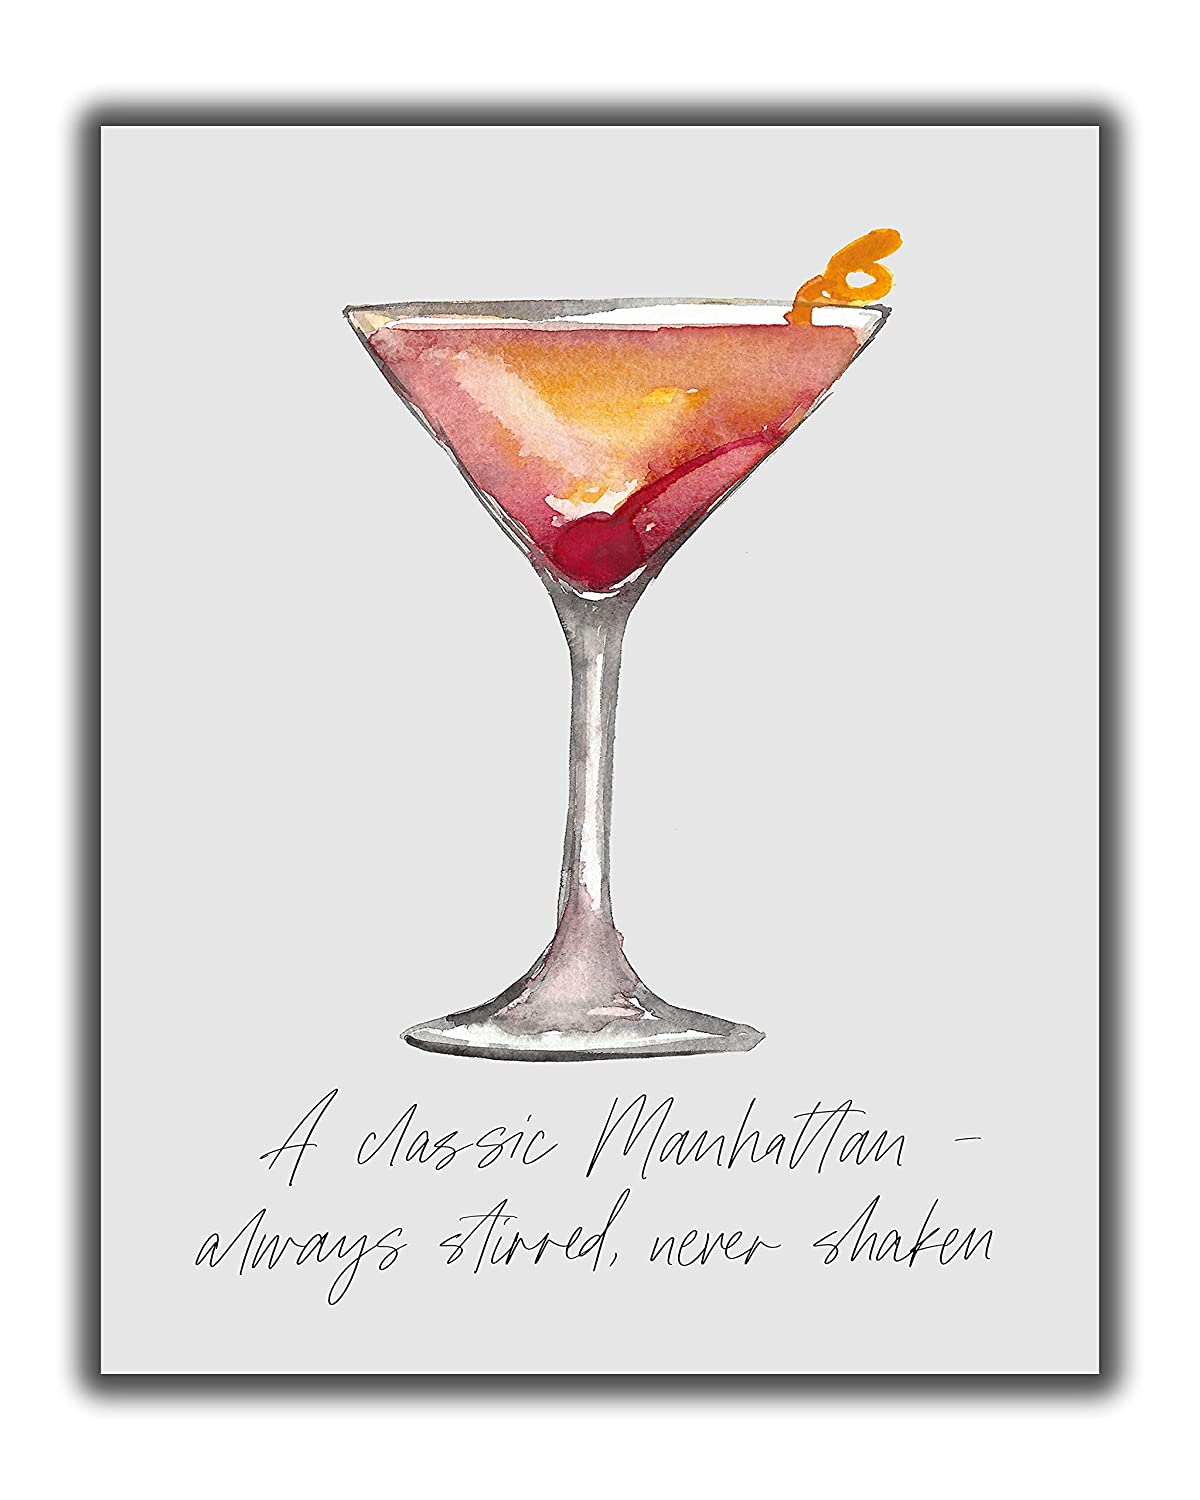 Amazon Com Manhattan Cocktail Bar Wall Art 8x10 Unframed Decor Print Makes A Great Gift For Kitchen Home Wet Bar Martini Wine Or Tiki Bar A Classic Manhattan Always Stirred Never